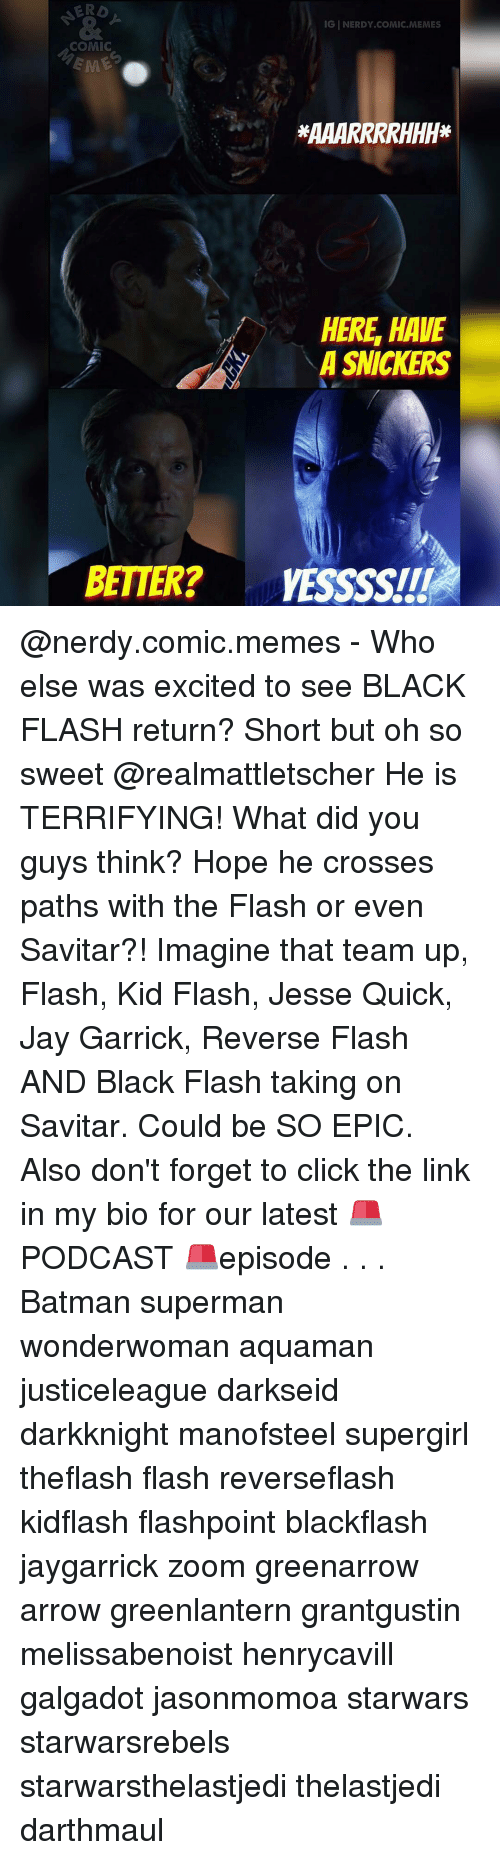 Excits: IGINERDY COMIC MEMES  COMIC  HERE HAVE  A SNICKERS  BETTER? VESSSSITI @nerdy.comic.memes - Who else was excited to see BLACK FLASH return? Short but oh so sweet @realmattletscher He is TERRIFYING! What did you guys think? Hope he crosses paths with the Flash or even Savitar?! Imagine that team up, Flash, Kid Flash, Jesse Quick, Jay Garrick, Reverse Flash AND Black Flash taking on Savitar. Could be SO EPIC. Also don't forget to click the link in my bio for our latest 🚨PODCAST 🚨episode . . . Batman superman wonderwoman aquaman justiceleague darkseid darkknight manofsteel supergirl theflash flash reverseflash kidflash flashpoint blackflash jaygarrick zoom greenarrow arrow greenlantern grantgustin melissabenoist henrycavill galgadot jasonmomoa starwars starwarsrebels starwarsthelastjedi thelastjedi darthmaul